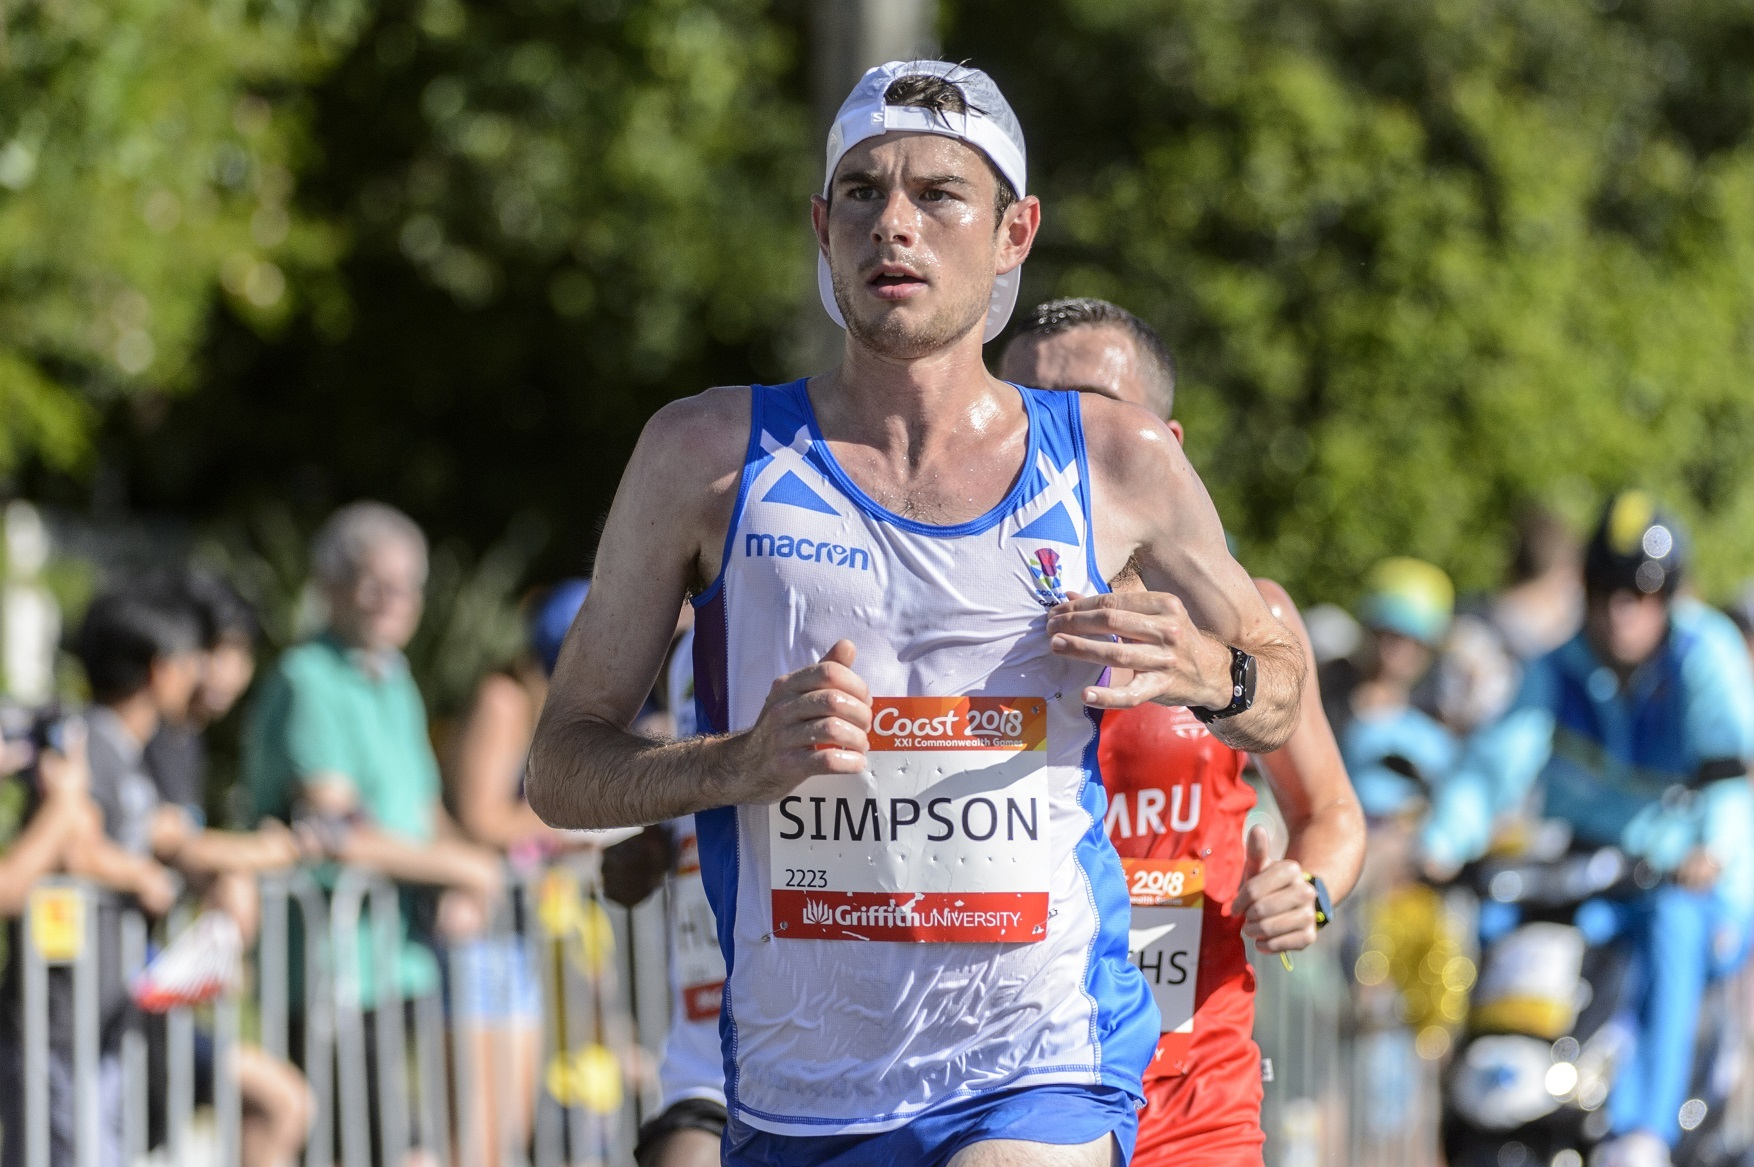 Robbie Simpson running into the unknown in first ultra marathon